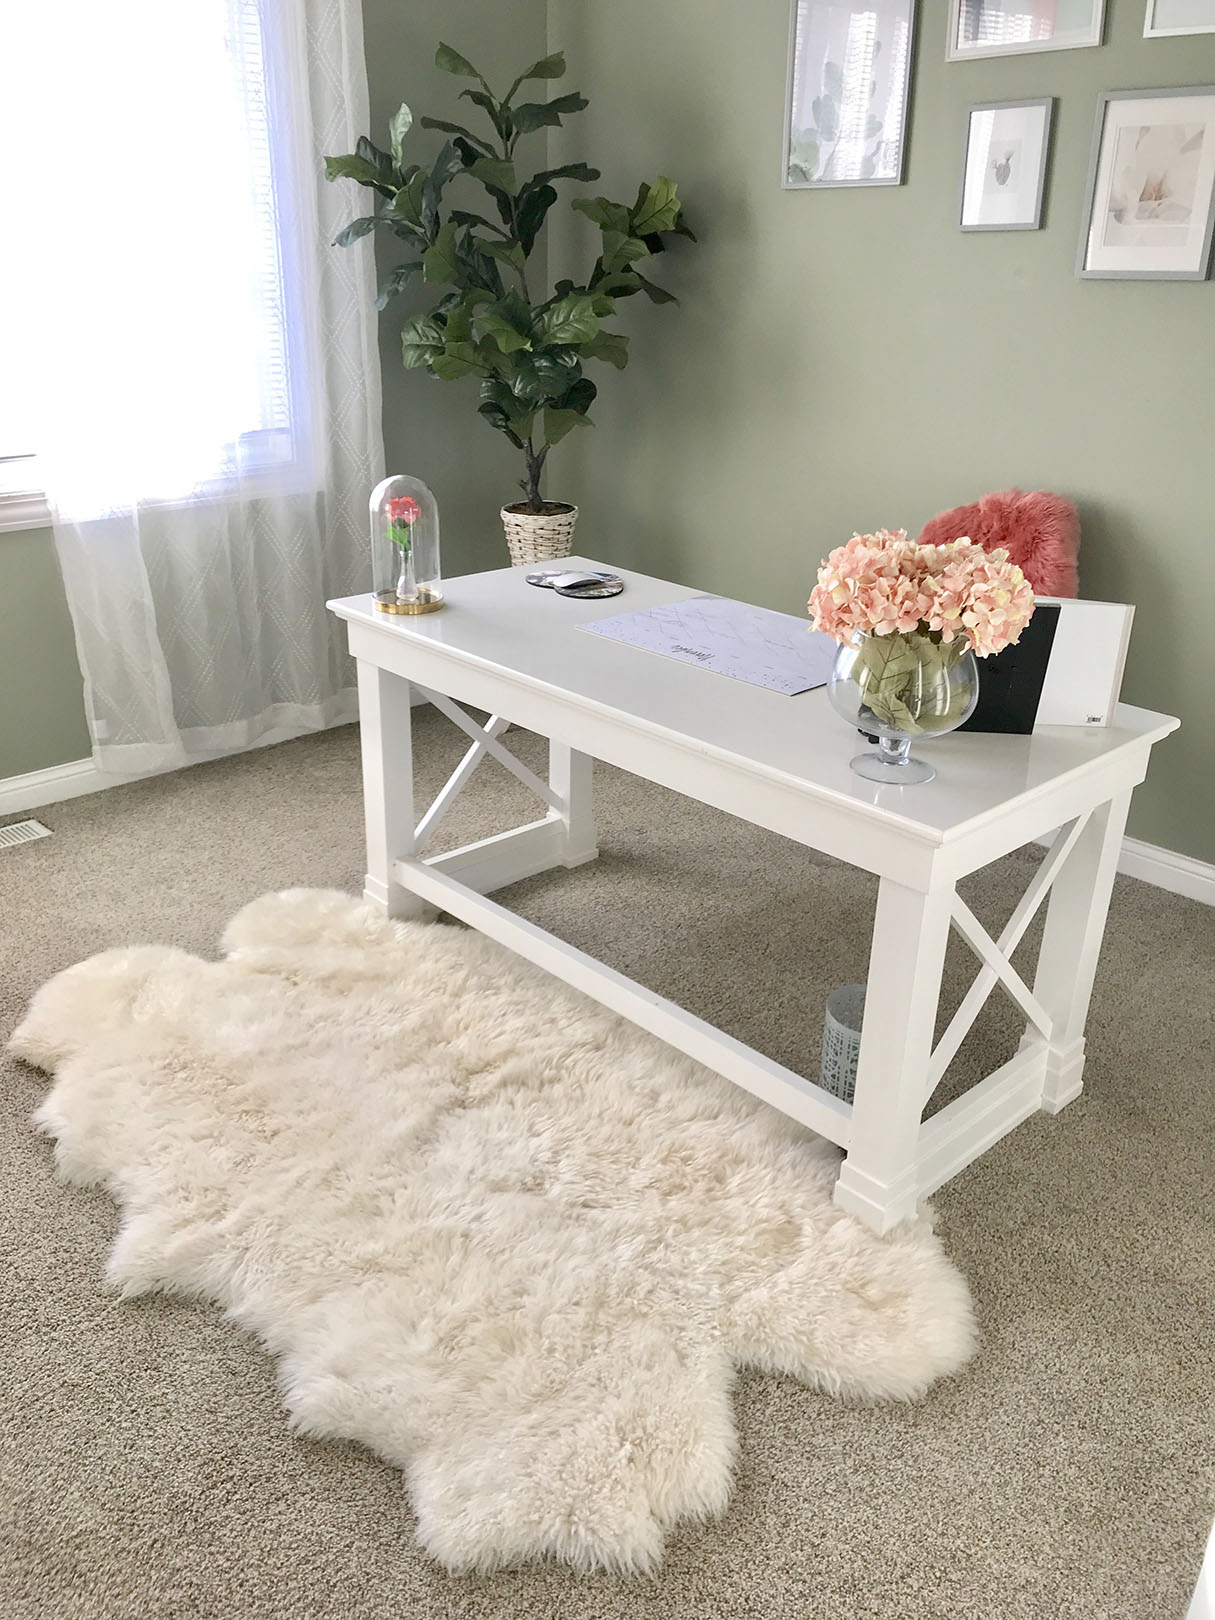 Office desk and rug